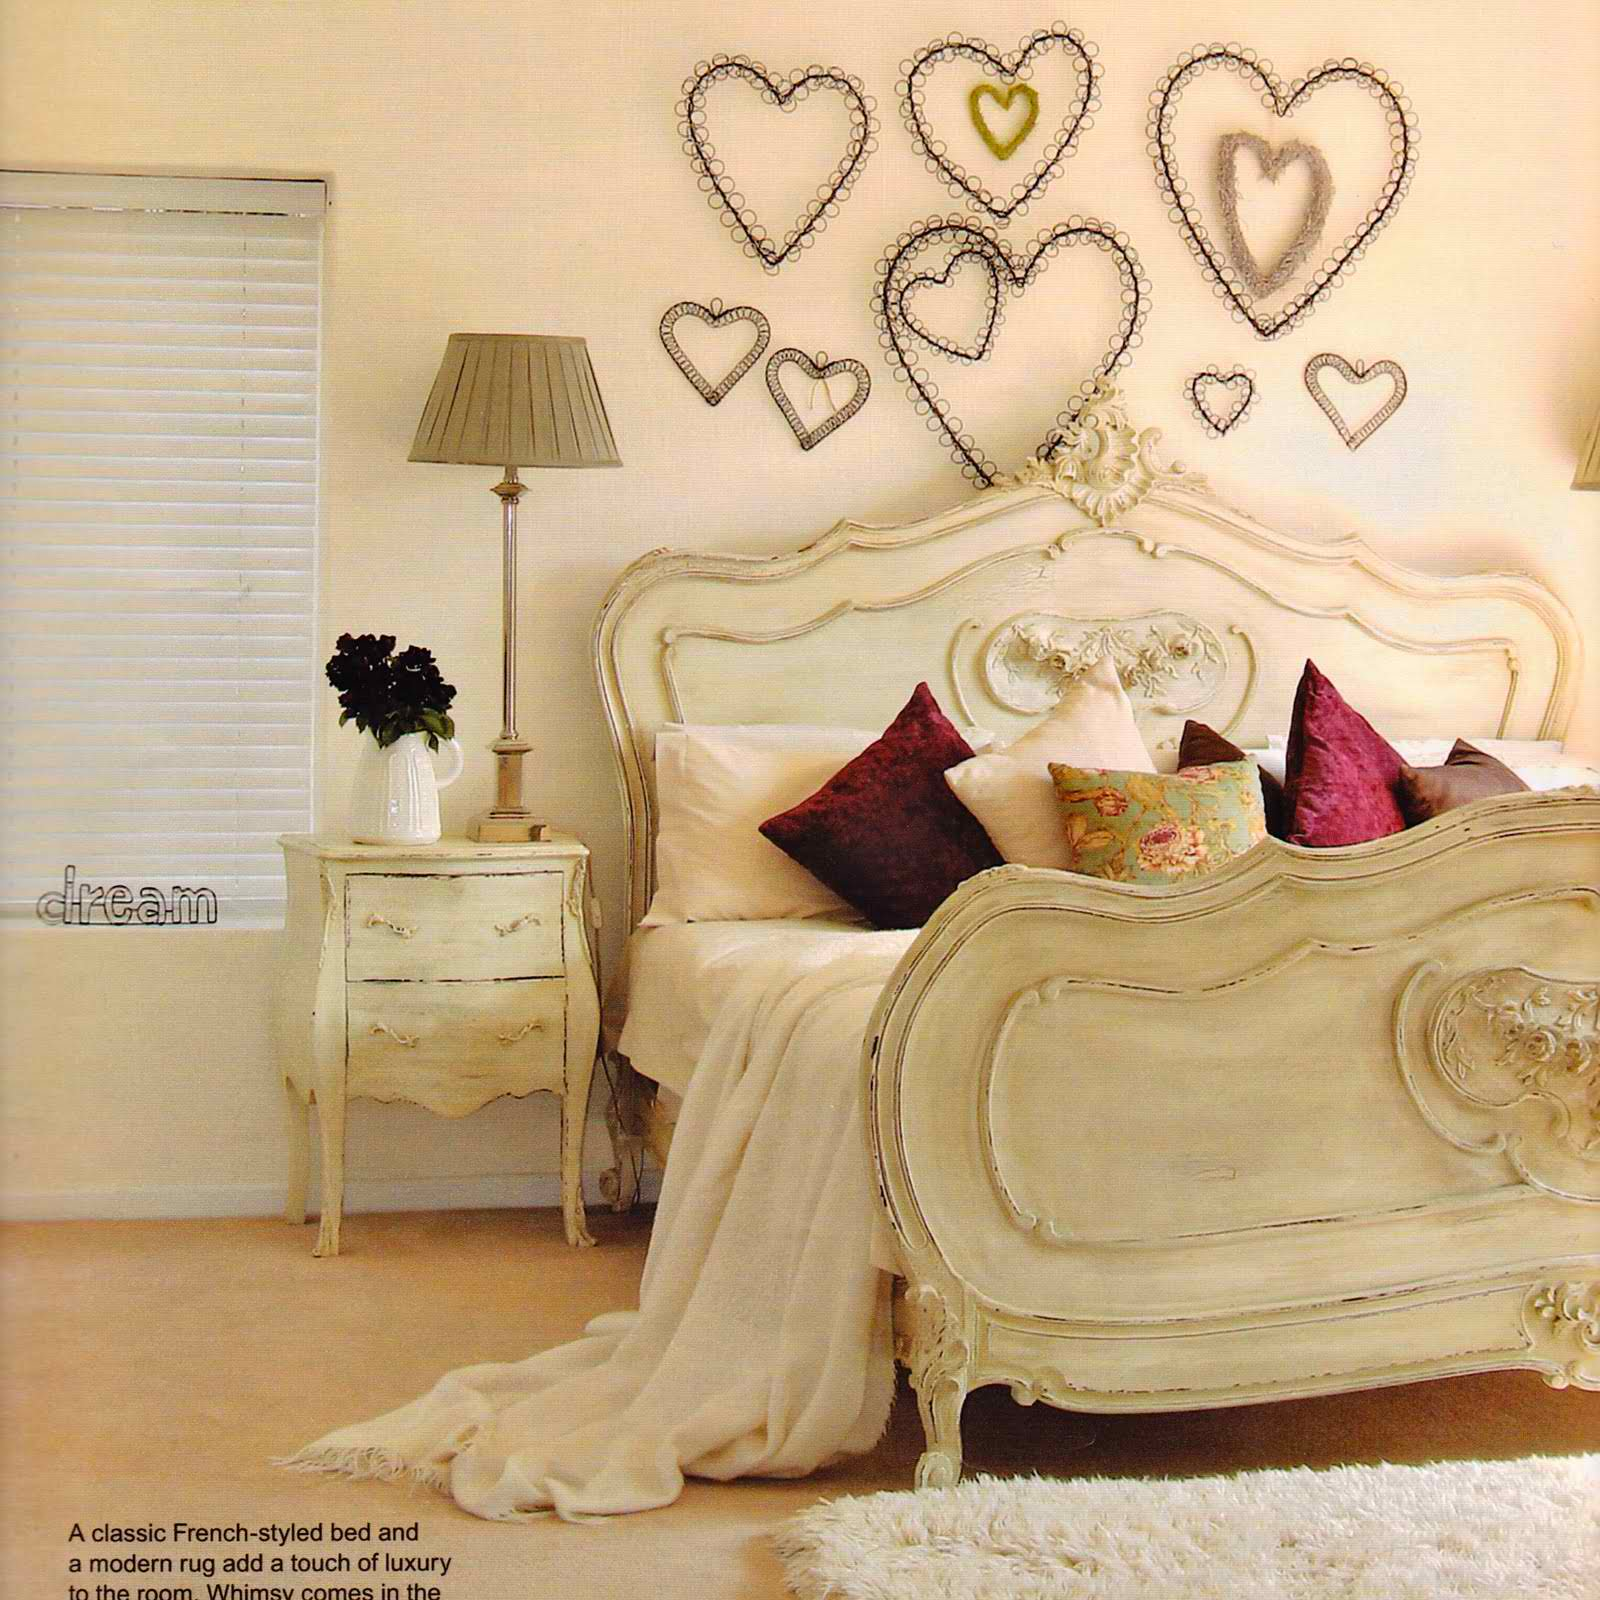 Bedroom Art Amazon Diy Romantic Bedroom Decorating Ideas Universal Furniture Bedroom Sets Bedroom Interior With Cupboard: 20 Romantic Bedroom Ideas